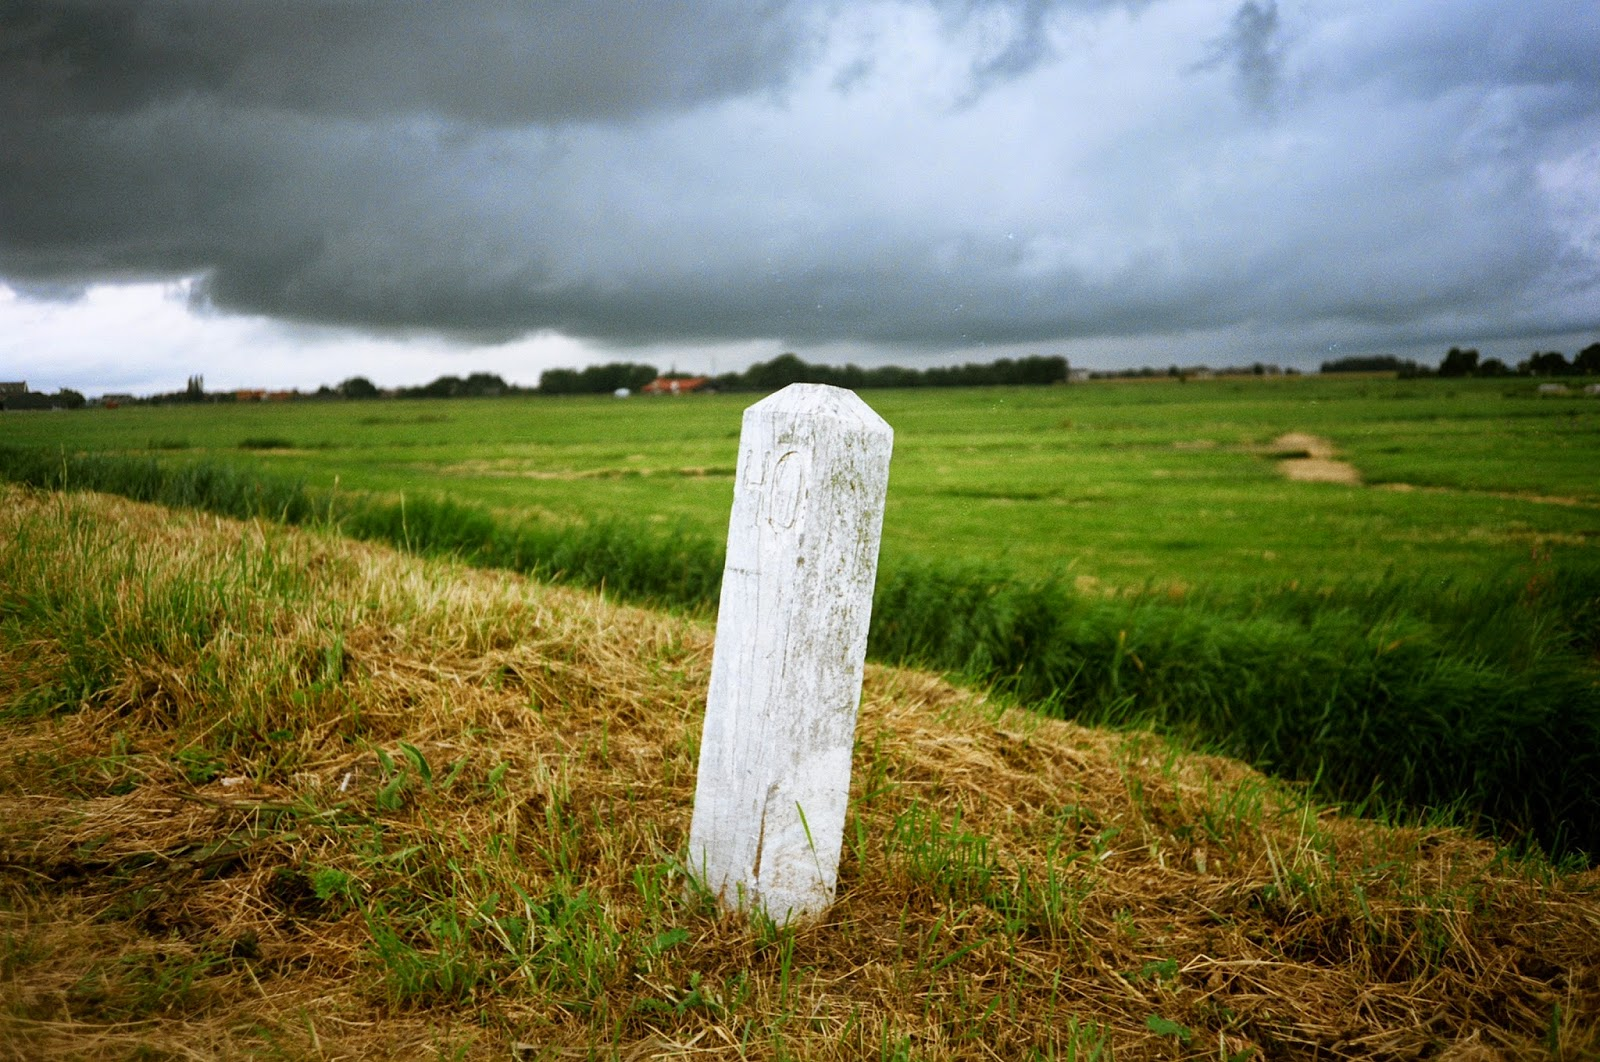 MARKEN, NETHERLANDS, ANTHROPOLOGY, FOLKLORE, MILESTONES, THUNDER STORMS,  © VAC 100 DAYS 4 MILLION CONVERSATIONS